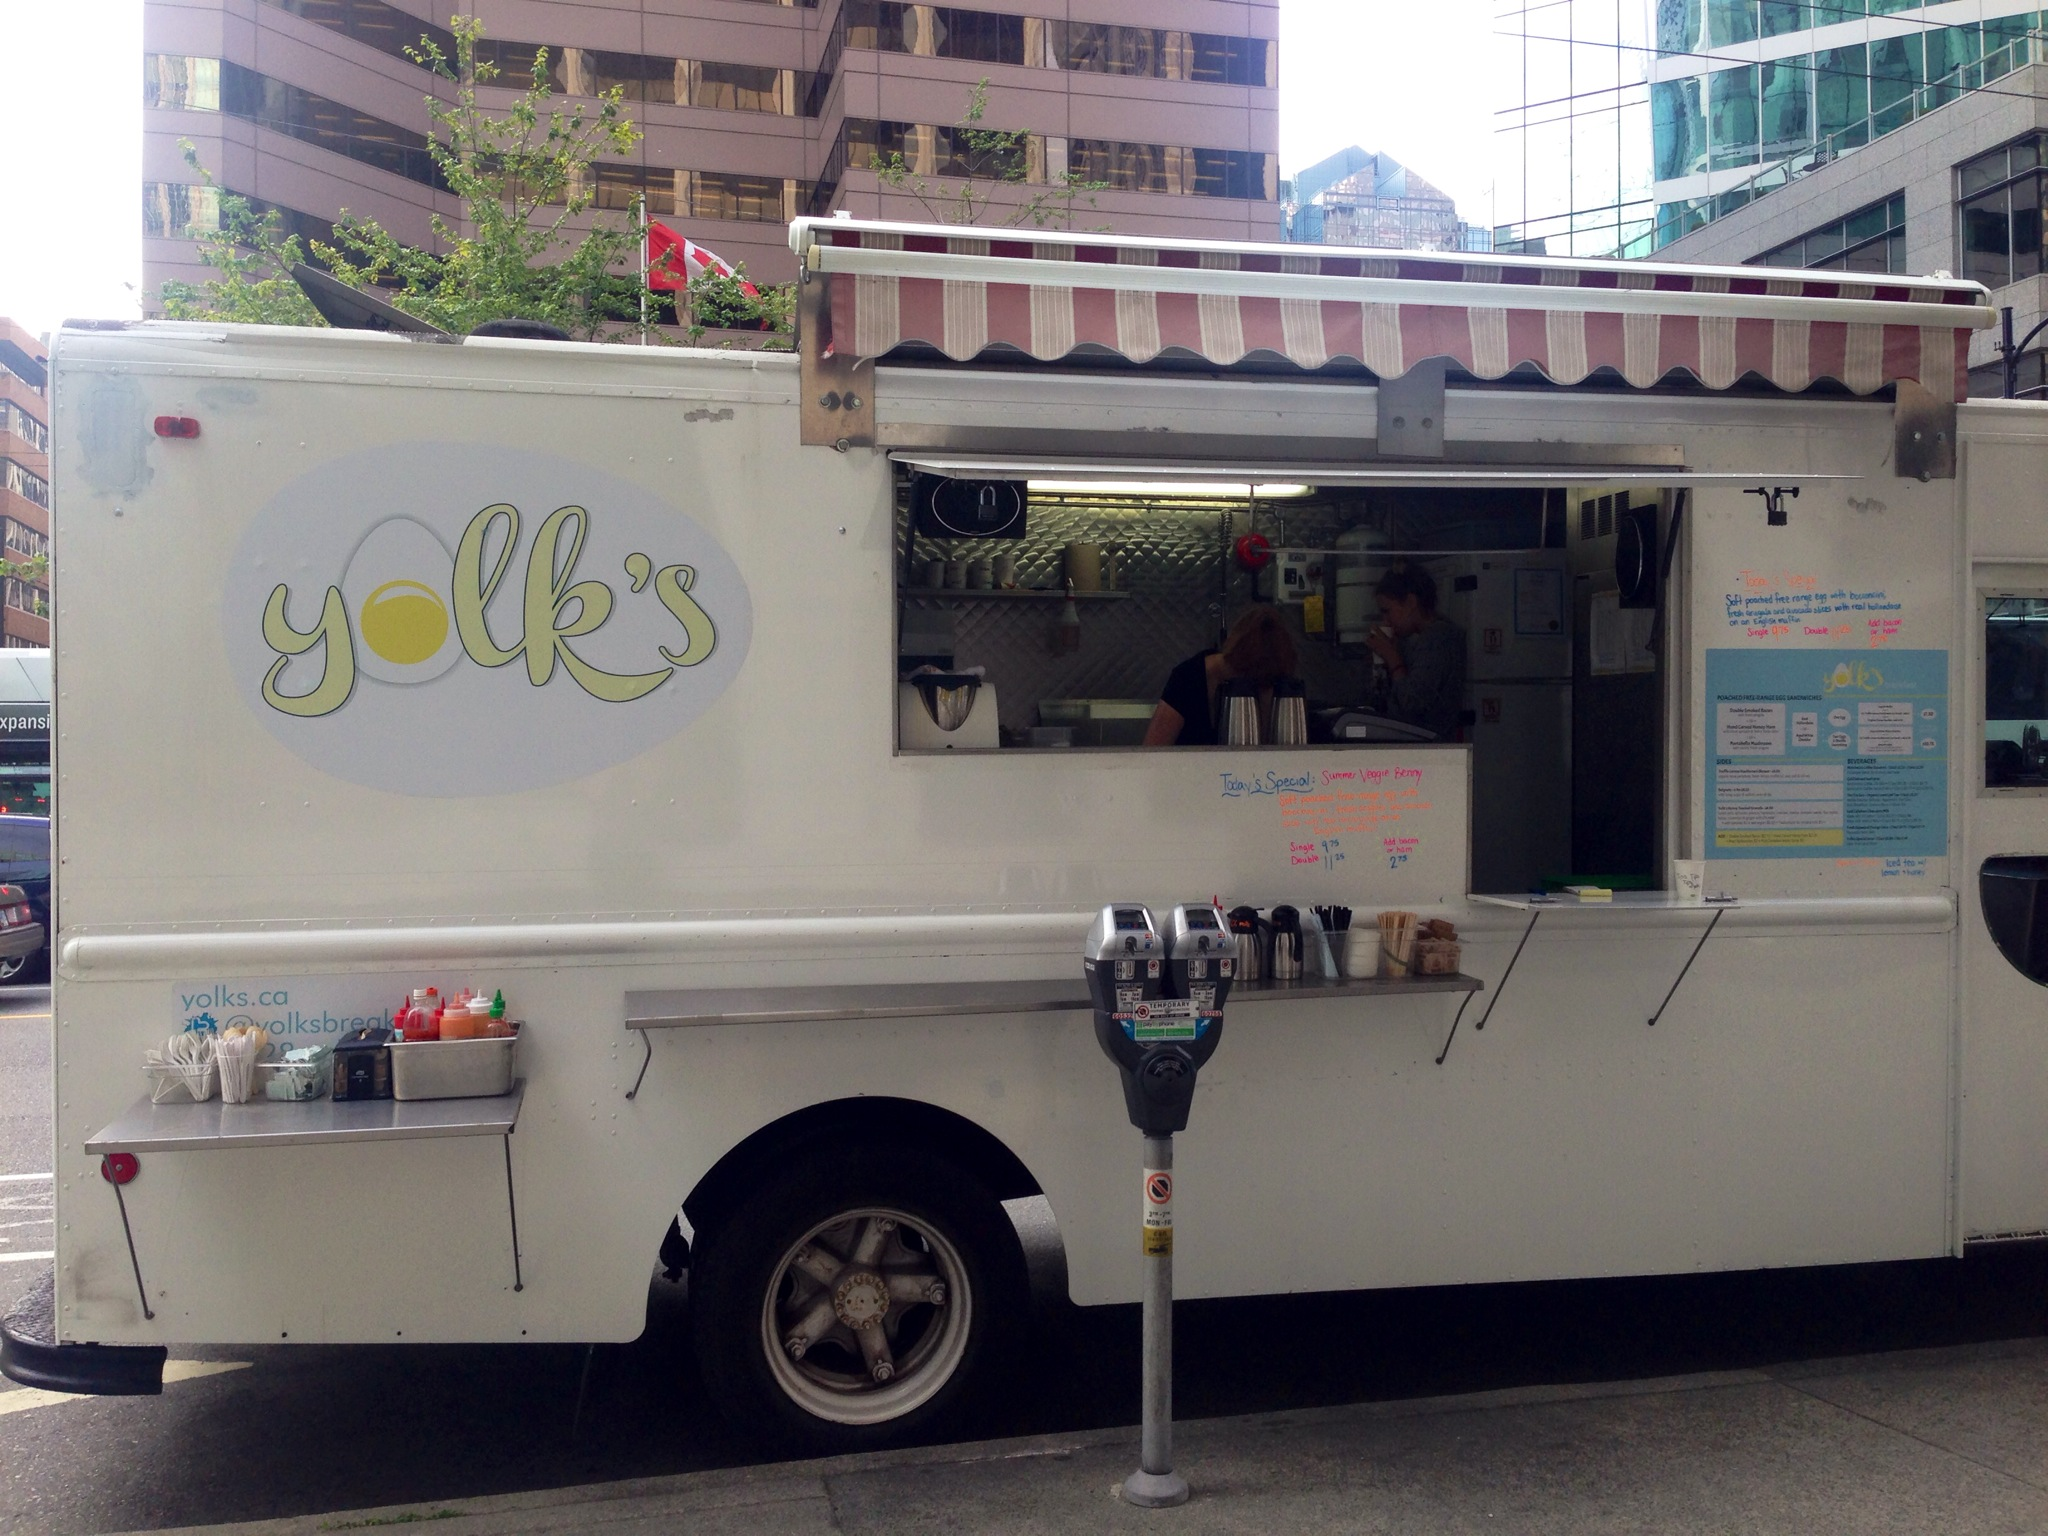 Yolks Breakfast Truck